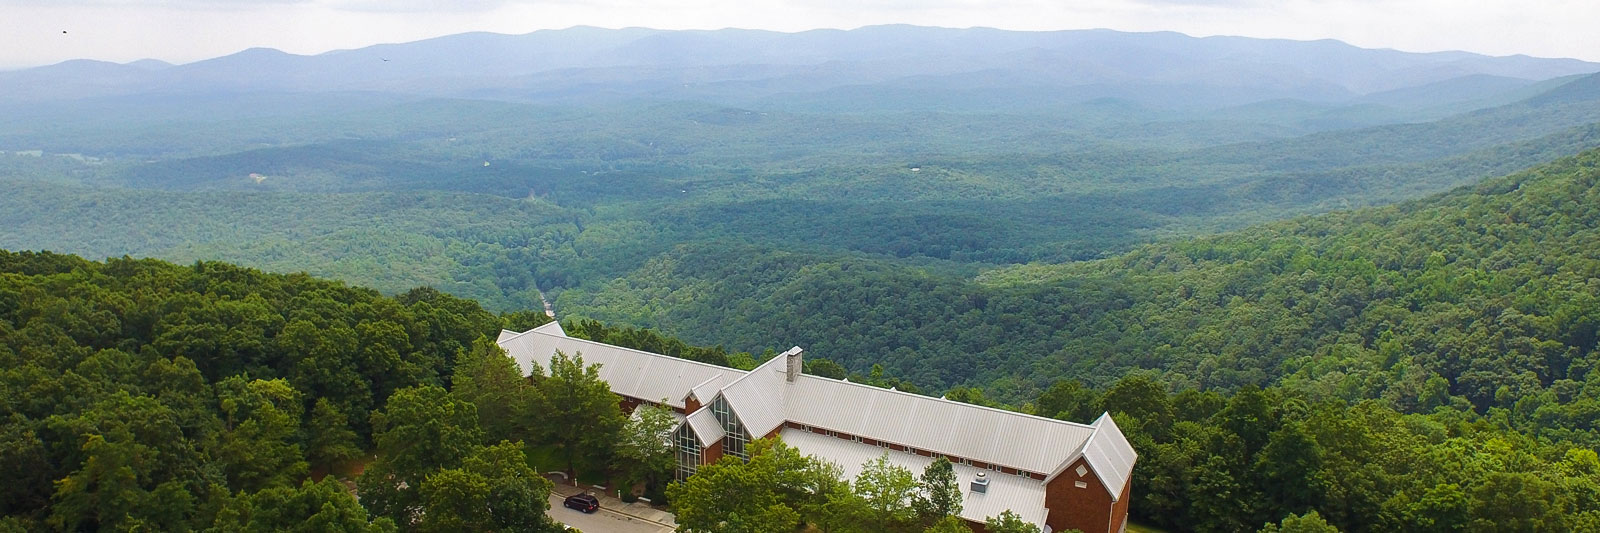 Amicalola Falls Adventure Lodge Things To Do Upcoming Events 1